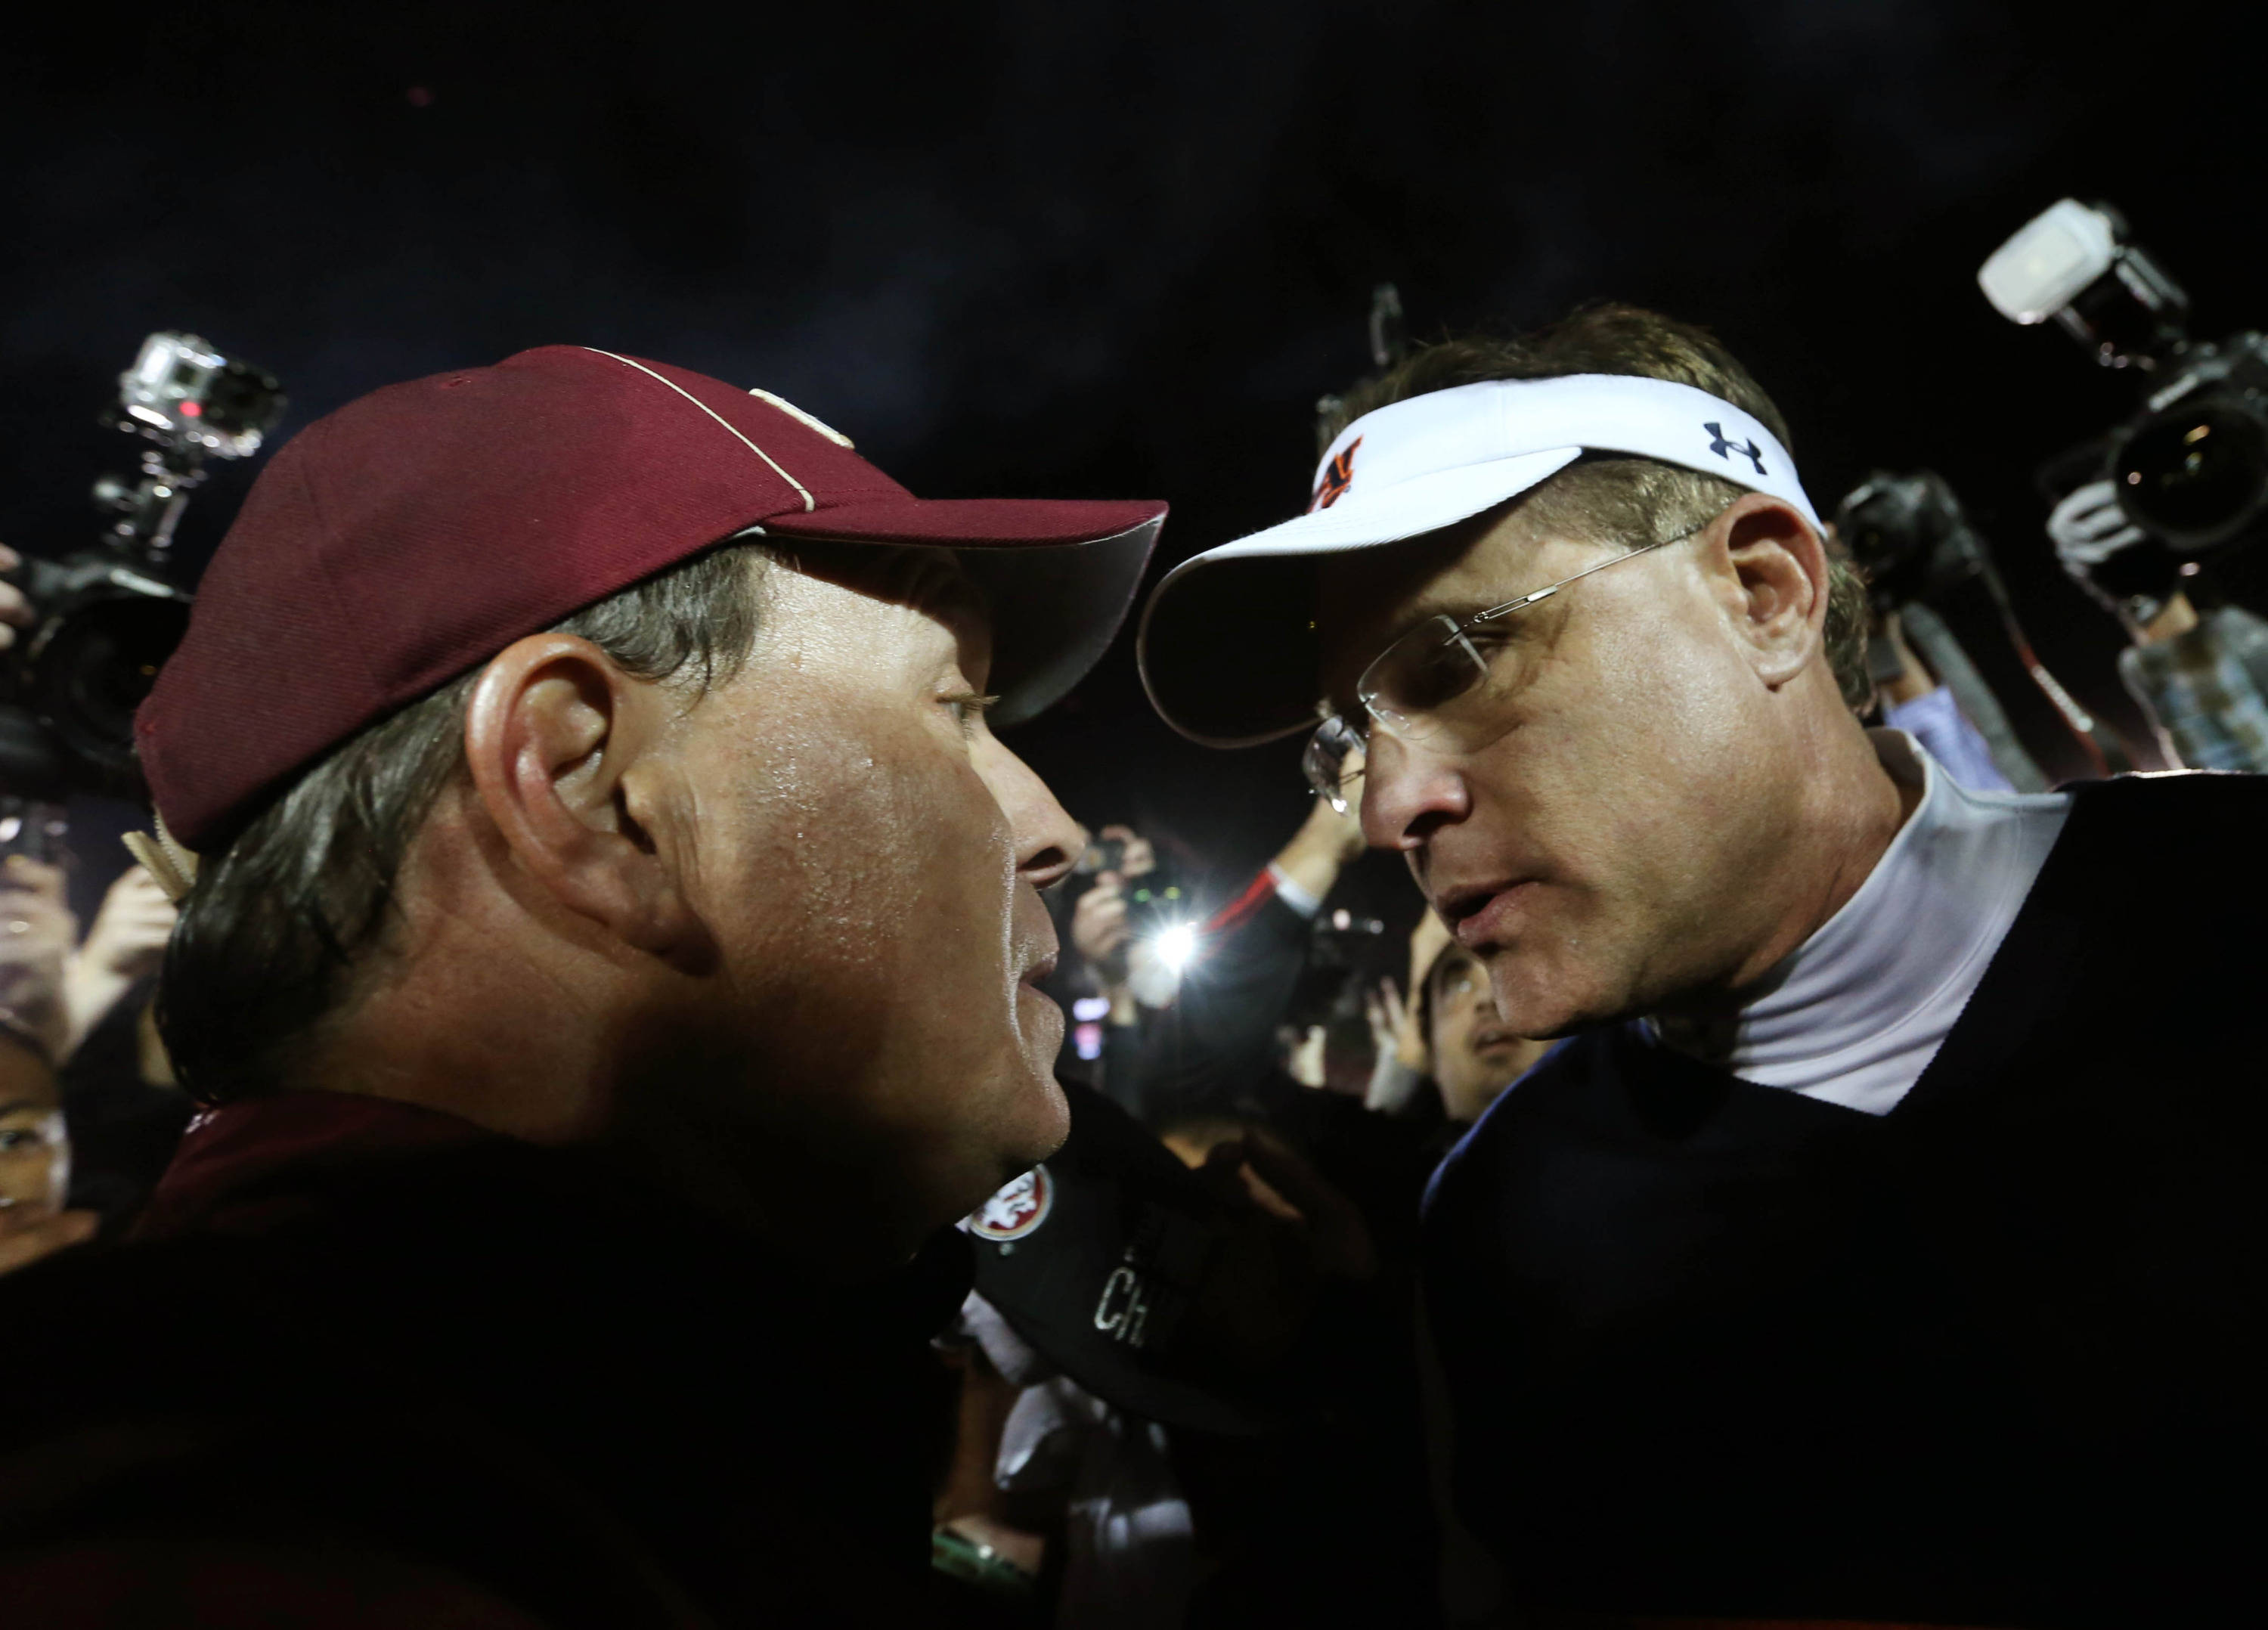 Jan 6, 2014; Pasadena, CA, USA; Auburn Tigers head coach Gus Malzahn (right) congratulates Florida State Seminoles head coach Jimbo Fisher (left) during the second half of the 2014 BCS National Championship game at the Rose Bowl.  Mandatory Credit: Matthew Emmons-USA TODAY Sports